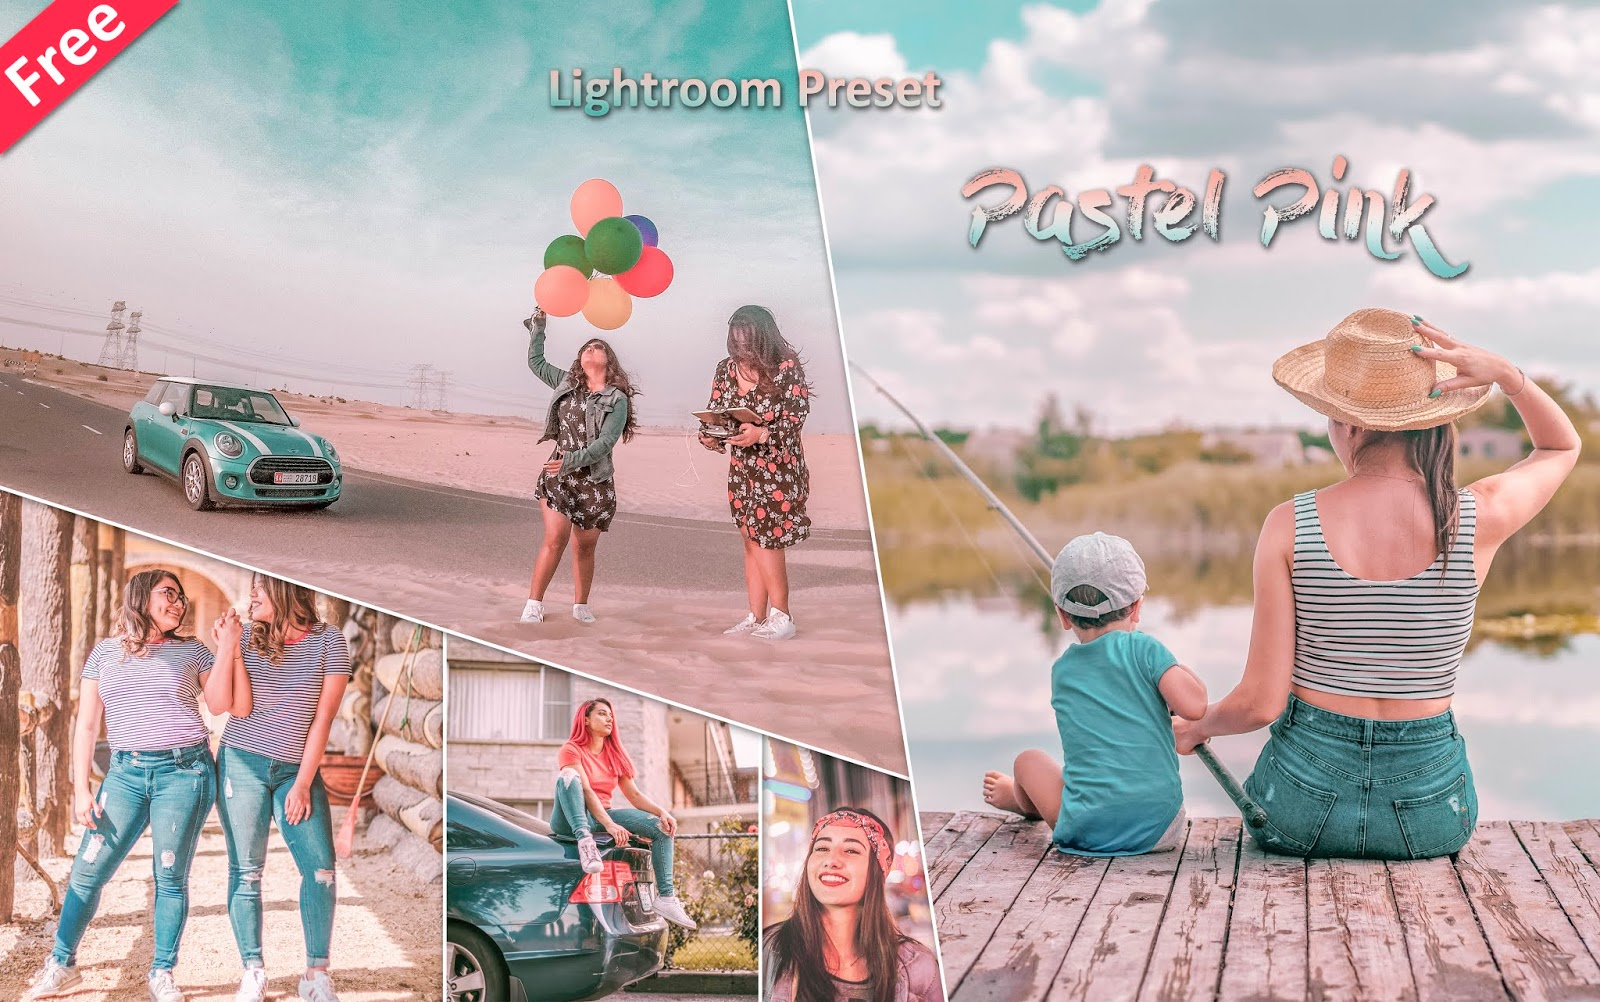 Download Pink Pastel Lightroom Preset for Free | How to Edit Photos Like Pink Pastel Effect in Lightroom